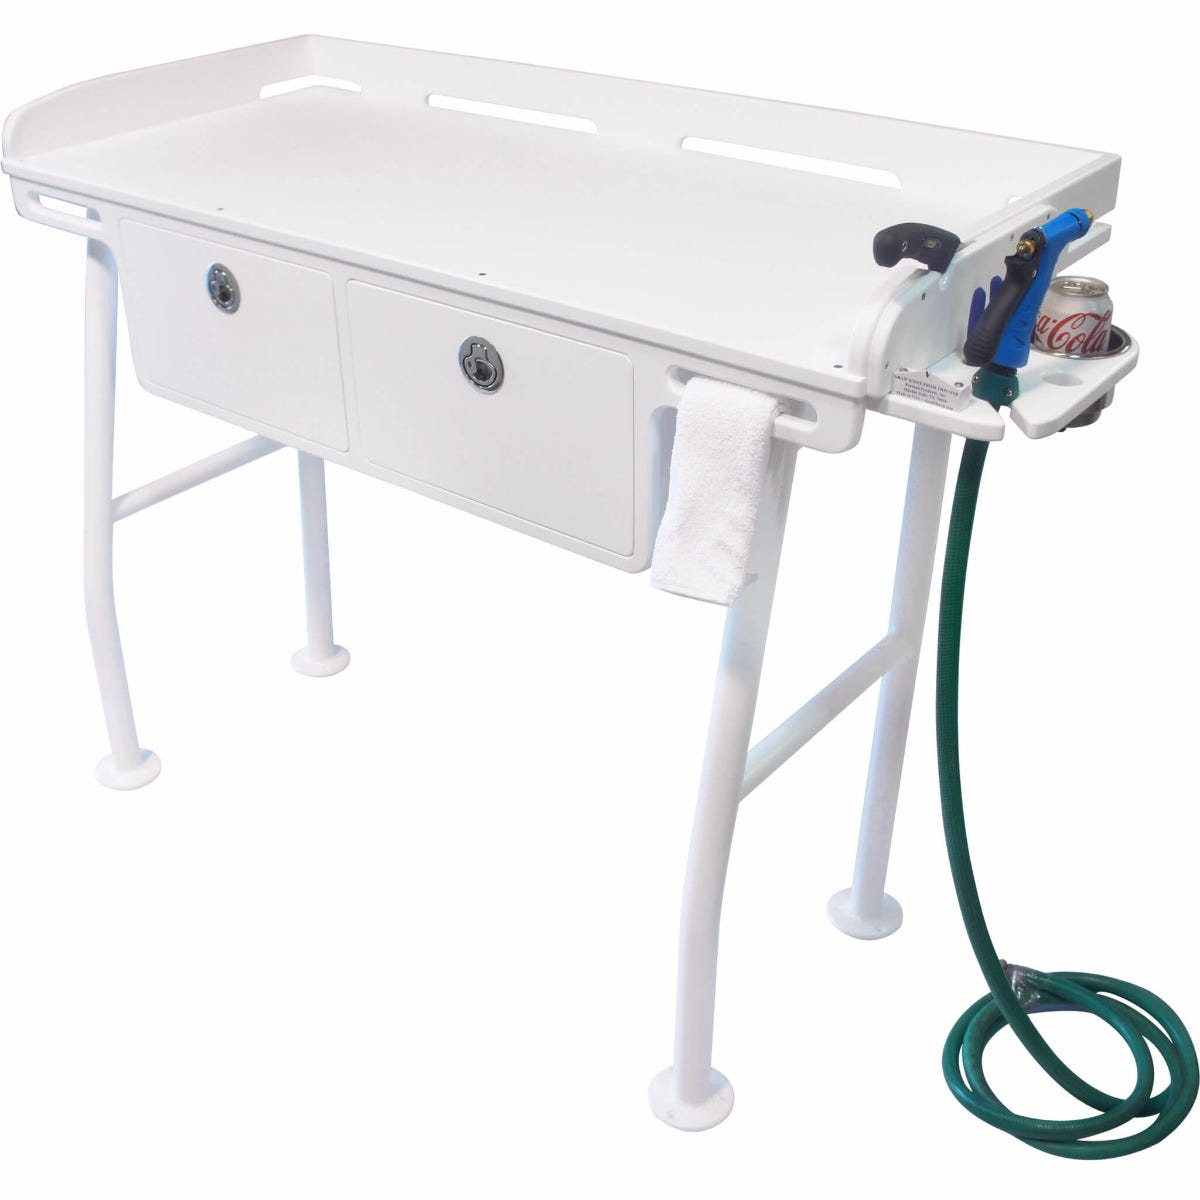 Fish cleaning table with faucet search results view for Homemade fish cleaning table